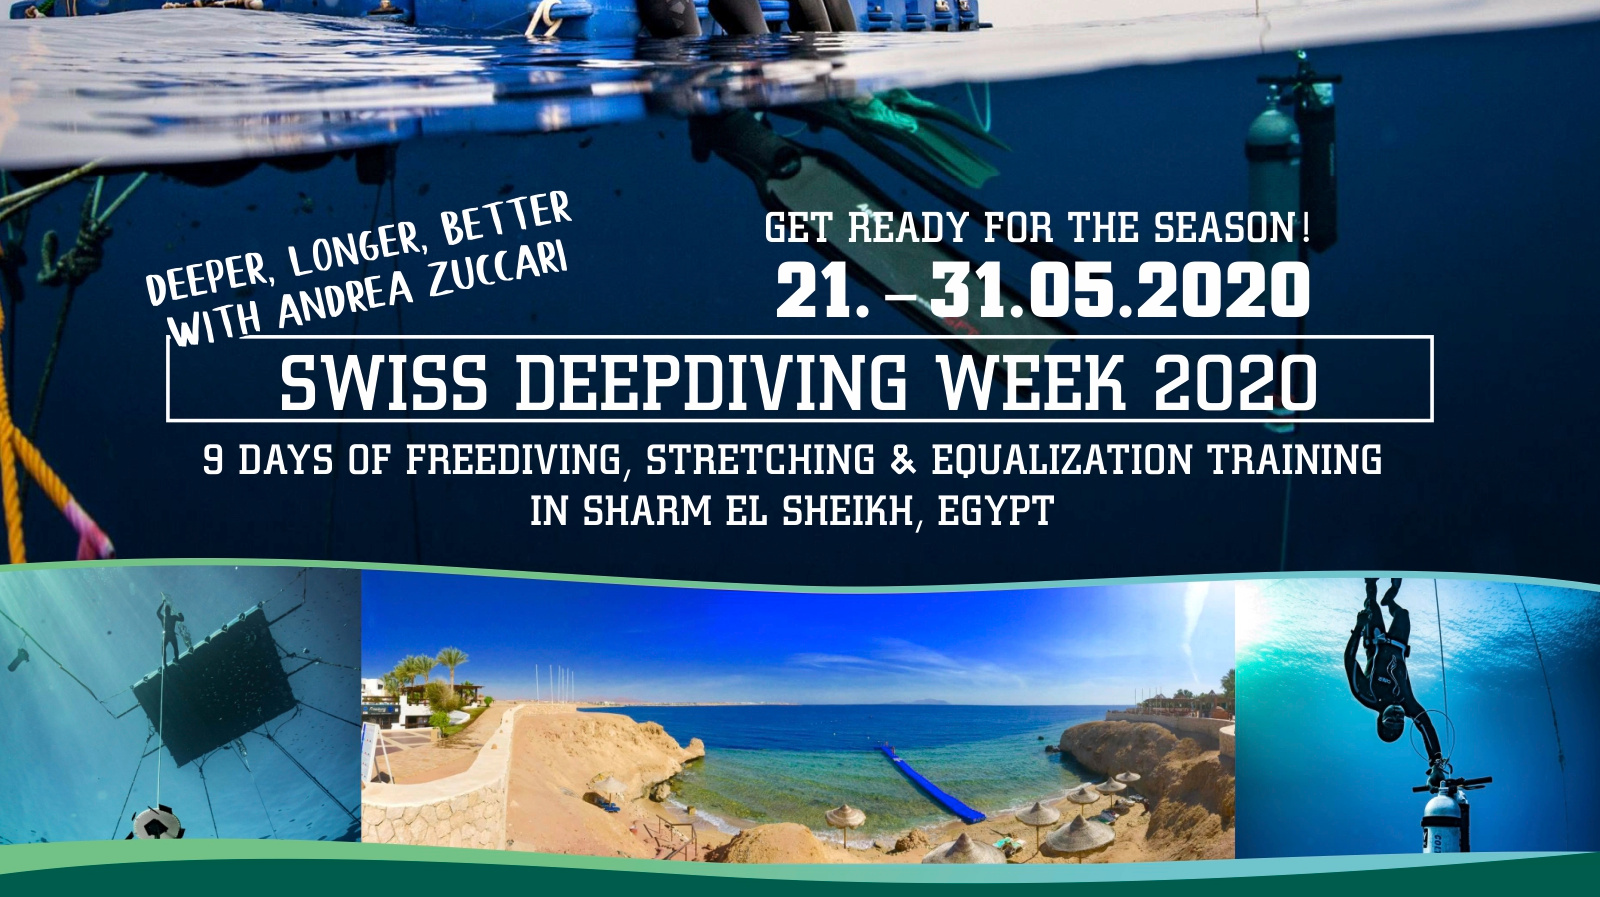 Swiss Deepdiving Week 2020 – with Andrea Zuccari